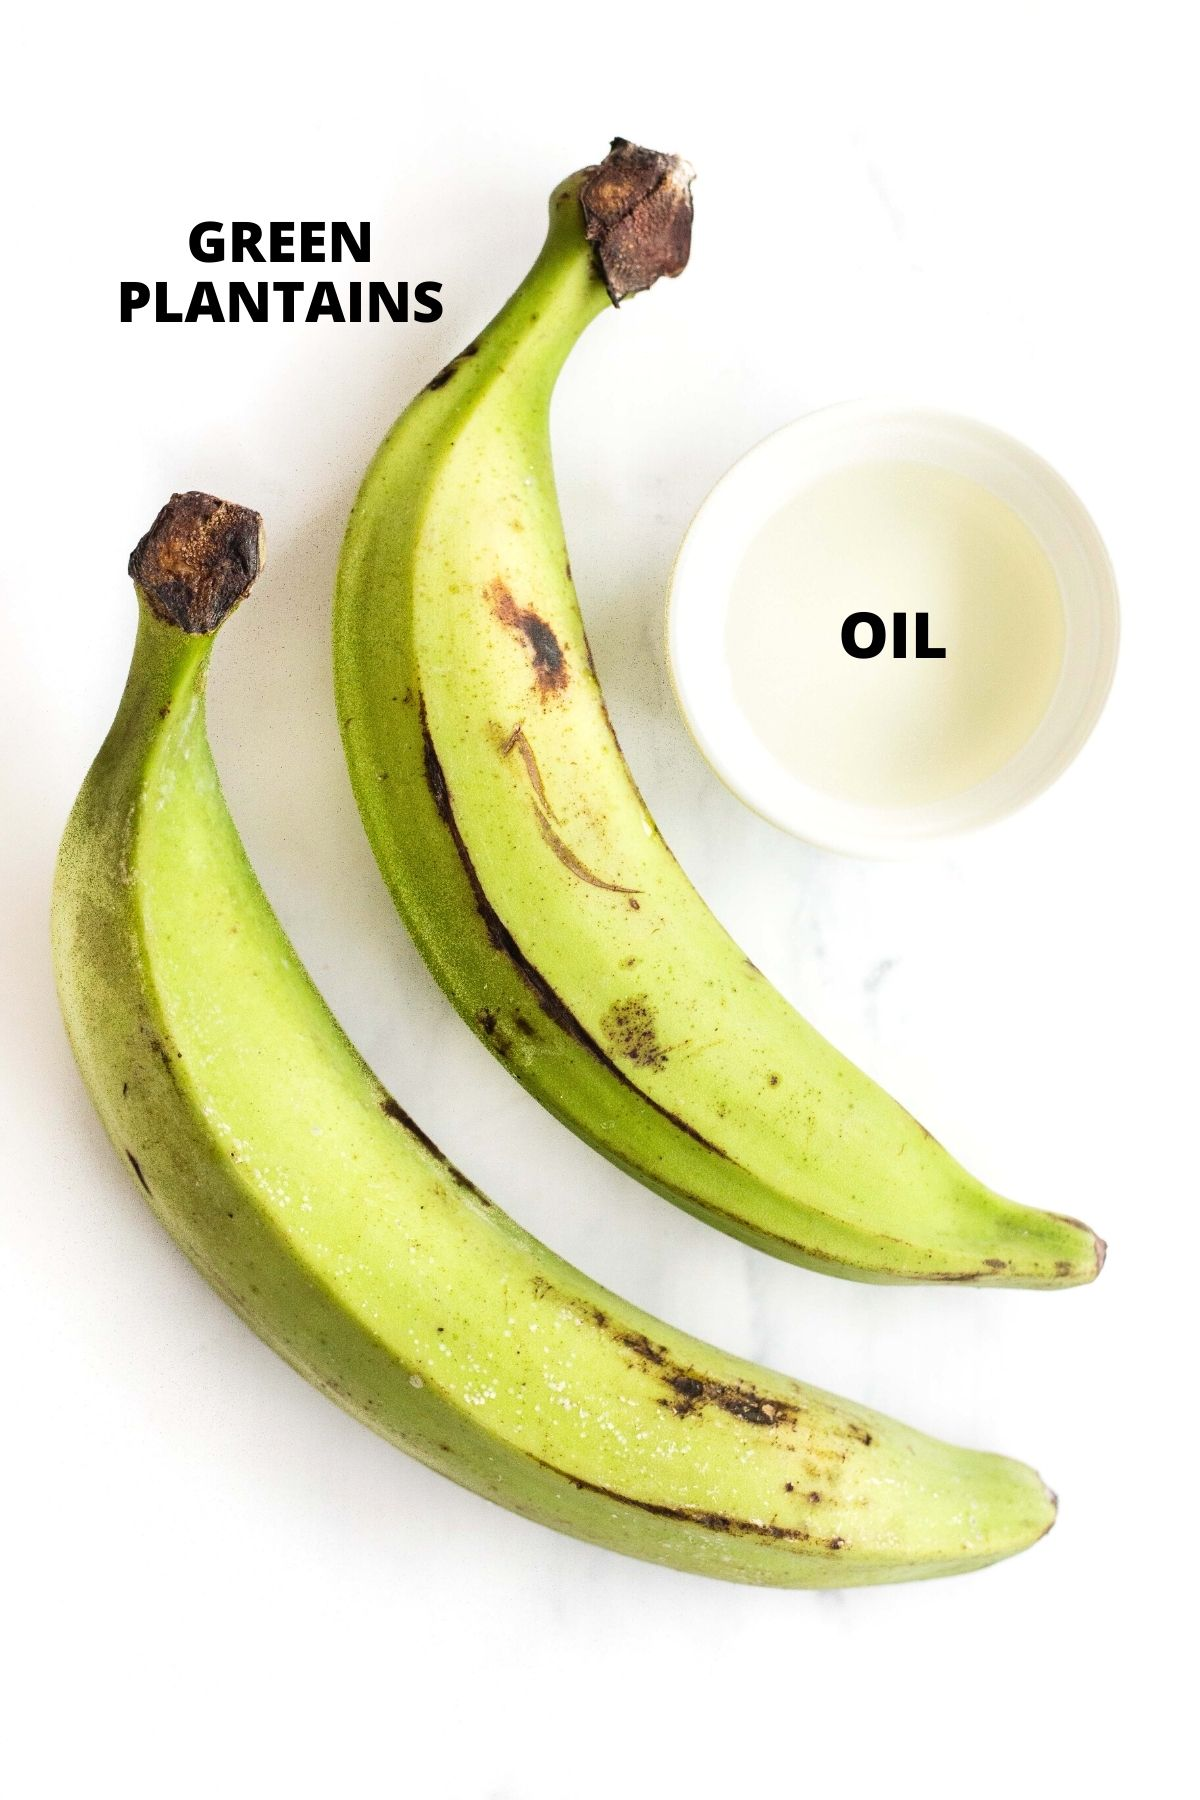 Labeled ingredients required for making air fryer plantains.